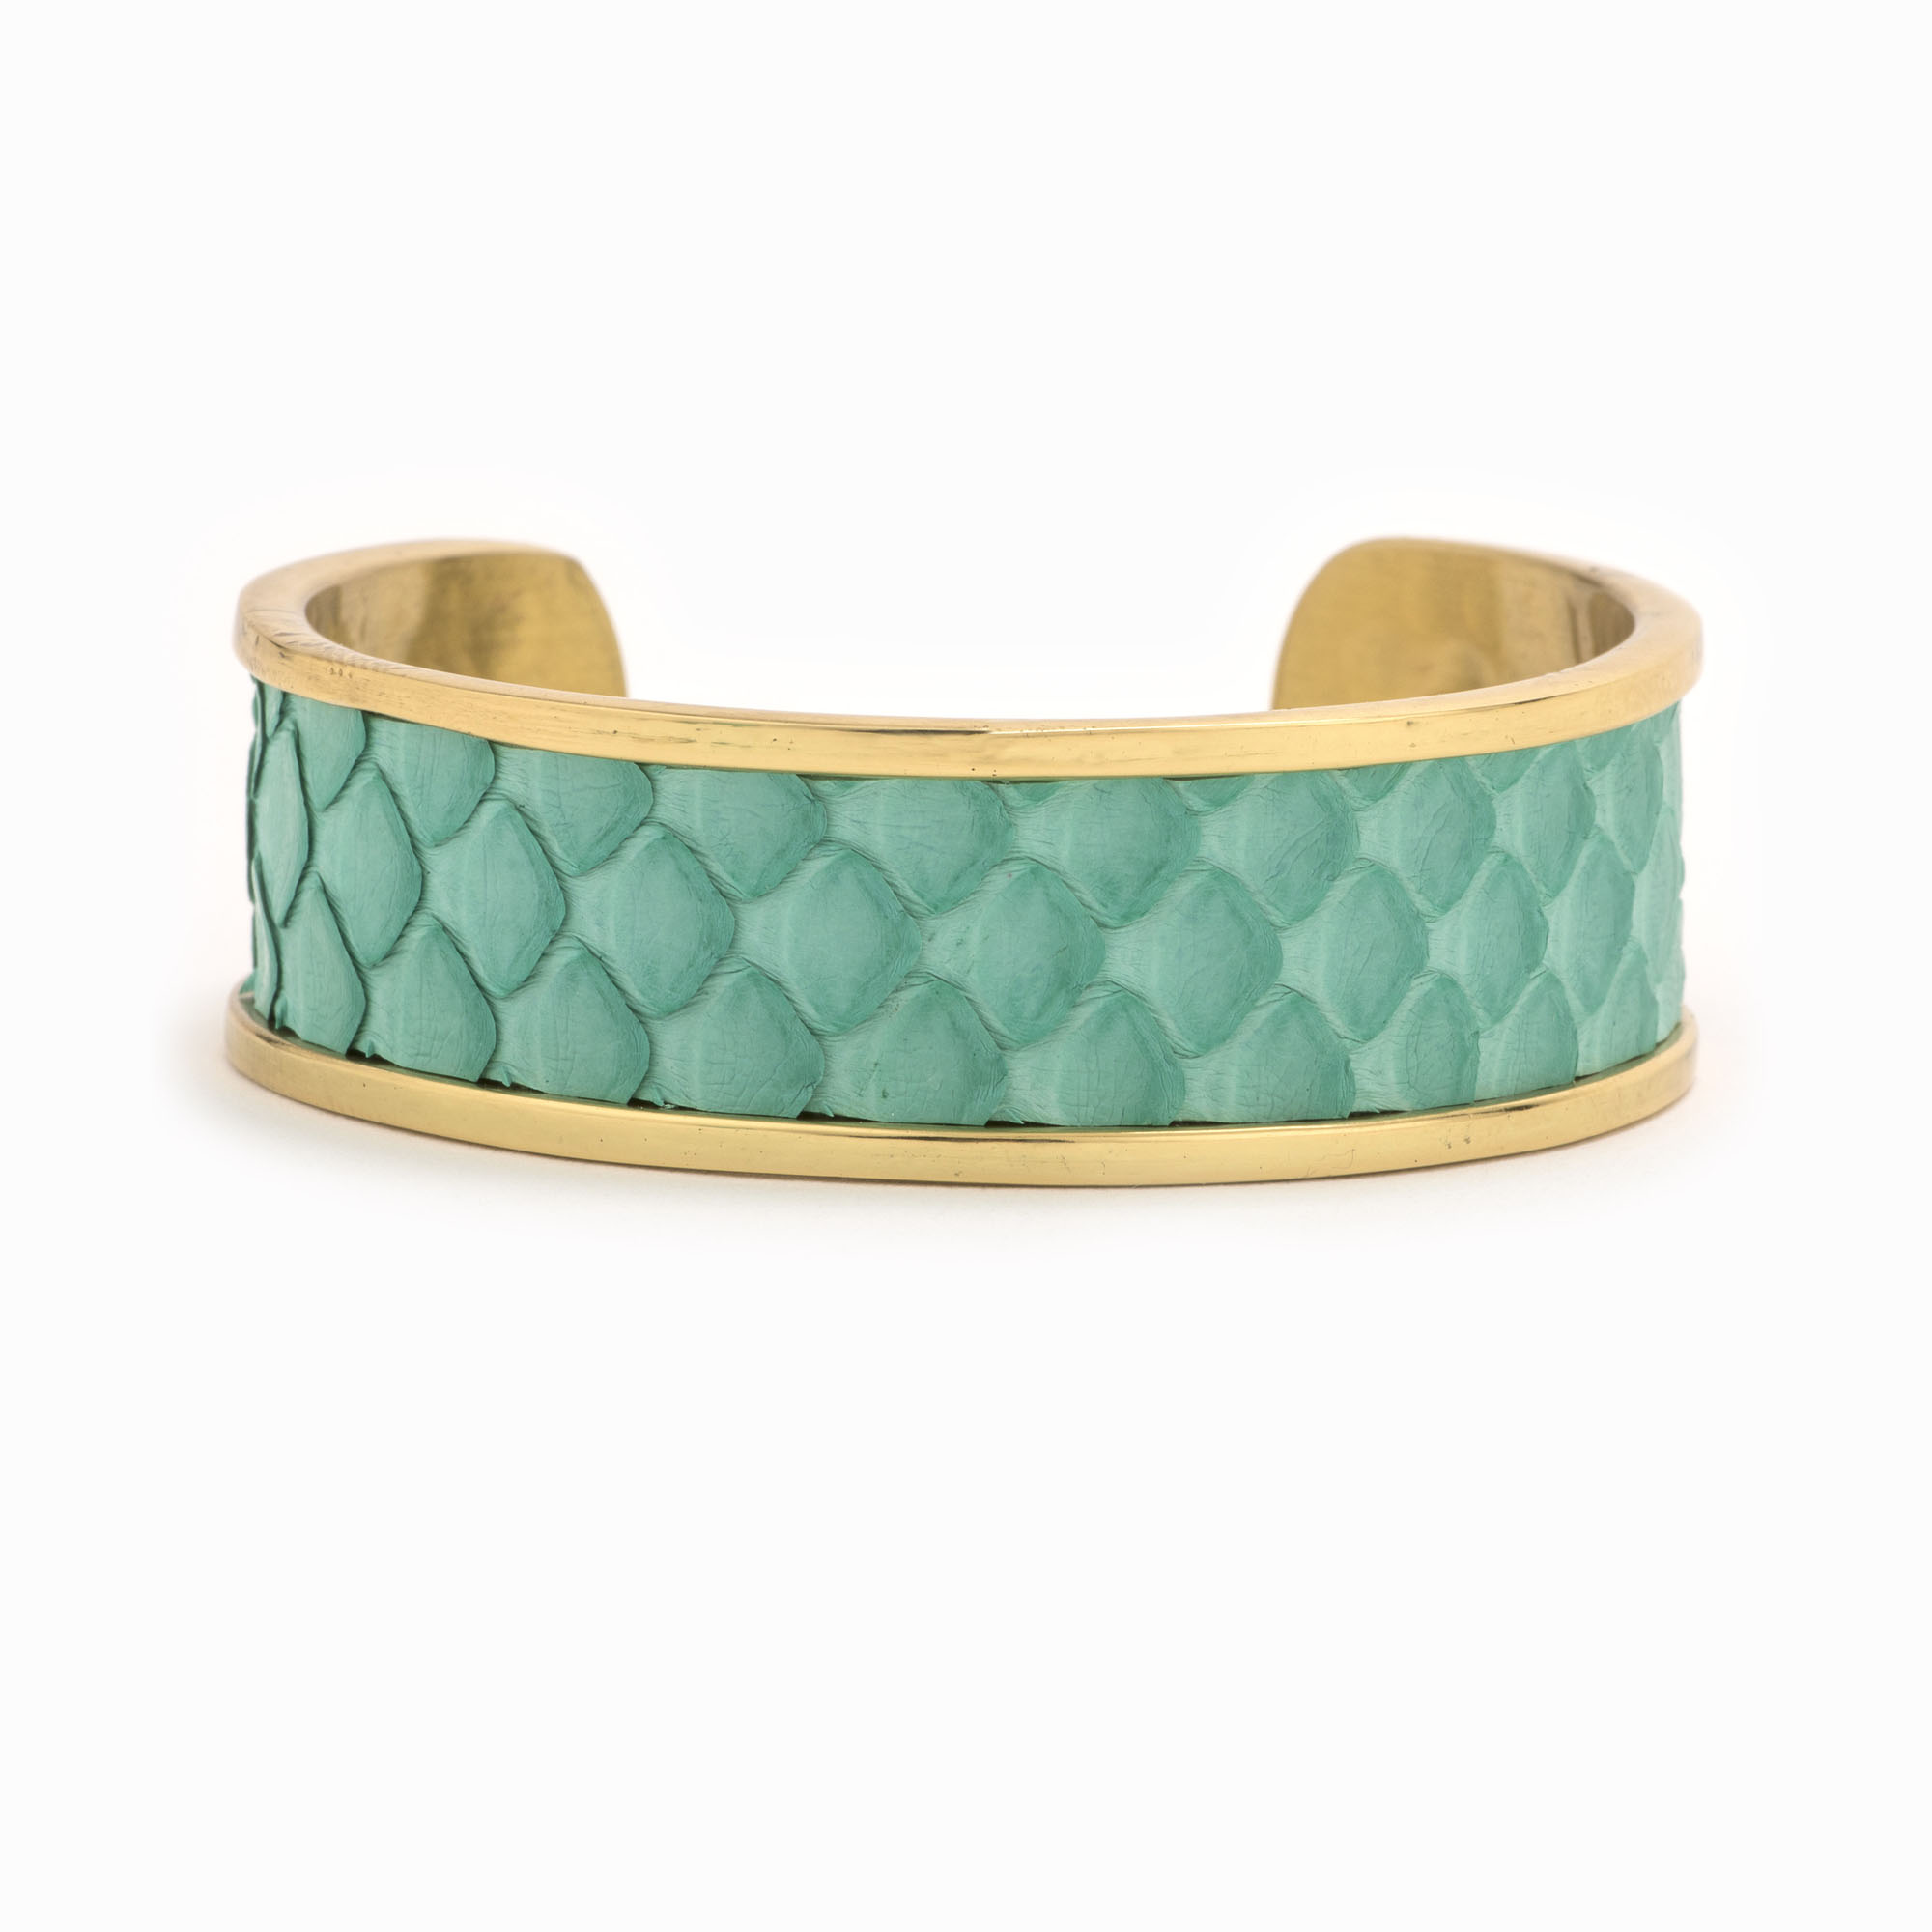 A medium gold cuff with turquoise colored snakeskin pattern inlaid.